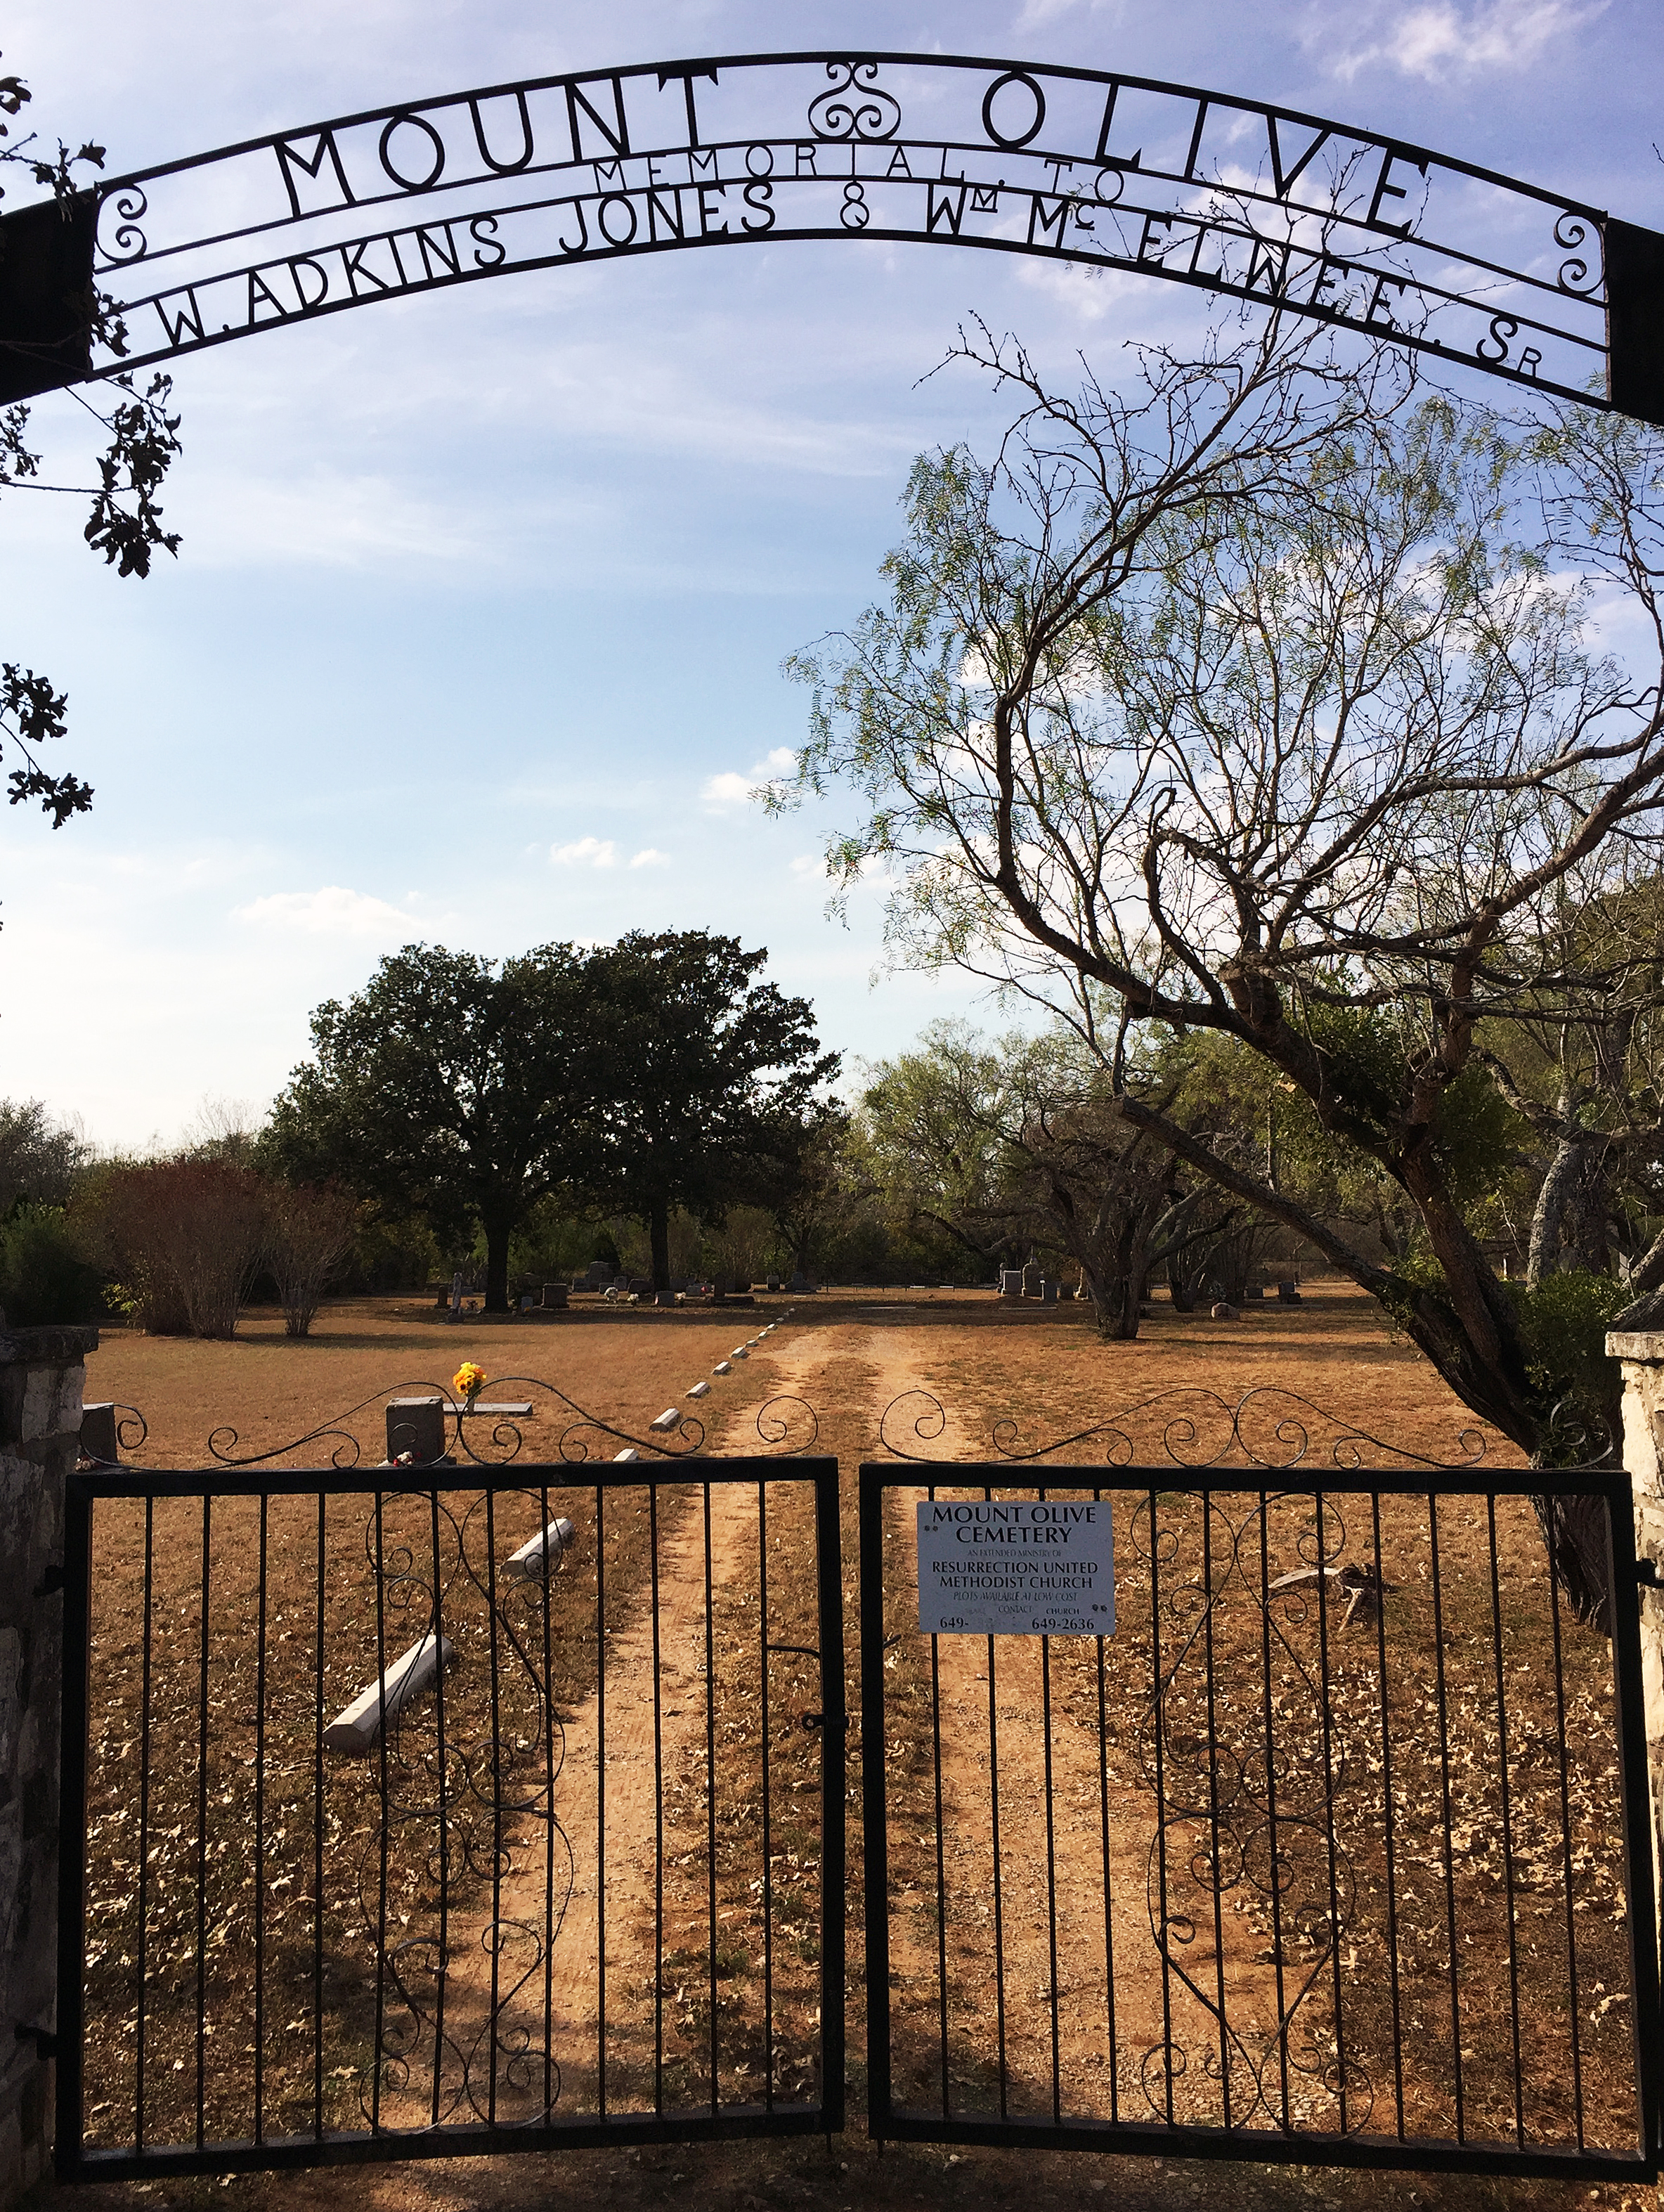 Resurrection United Methodist Church in San Antonio, Texas, has offered free burial spots at its Mount Olive Cemetery to families who lost loved ones in the Nov. 5, 2017, massacre at First Baptist Church of Sutherland Springs, Texas. Photo courtesy the Rev. Janet Weatherston.